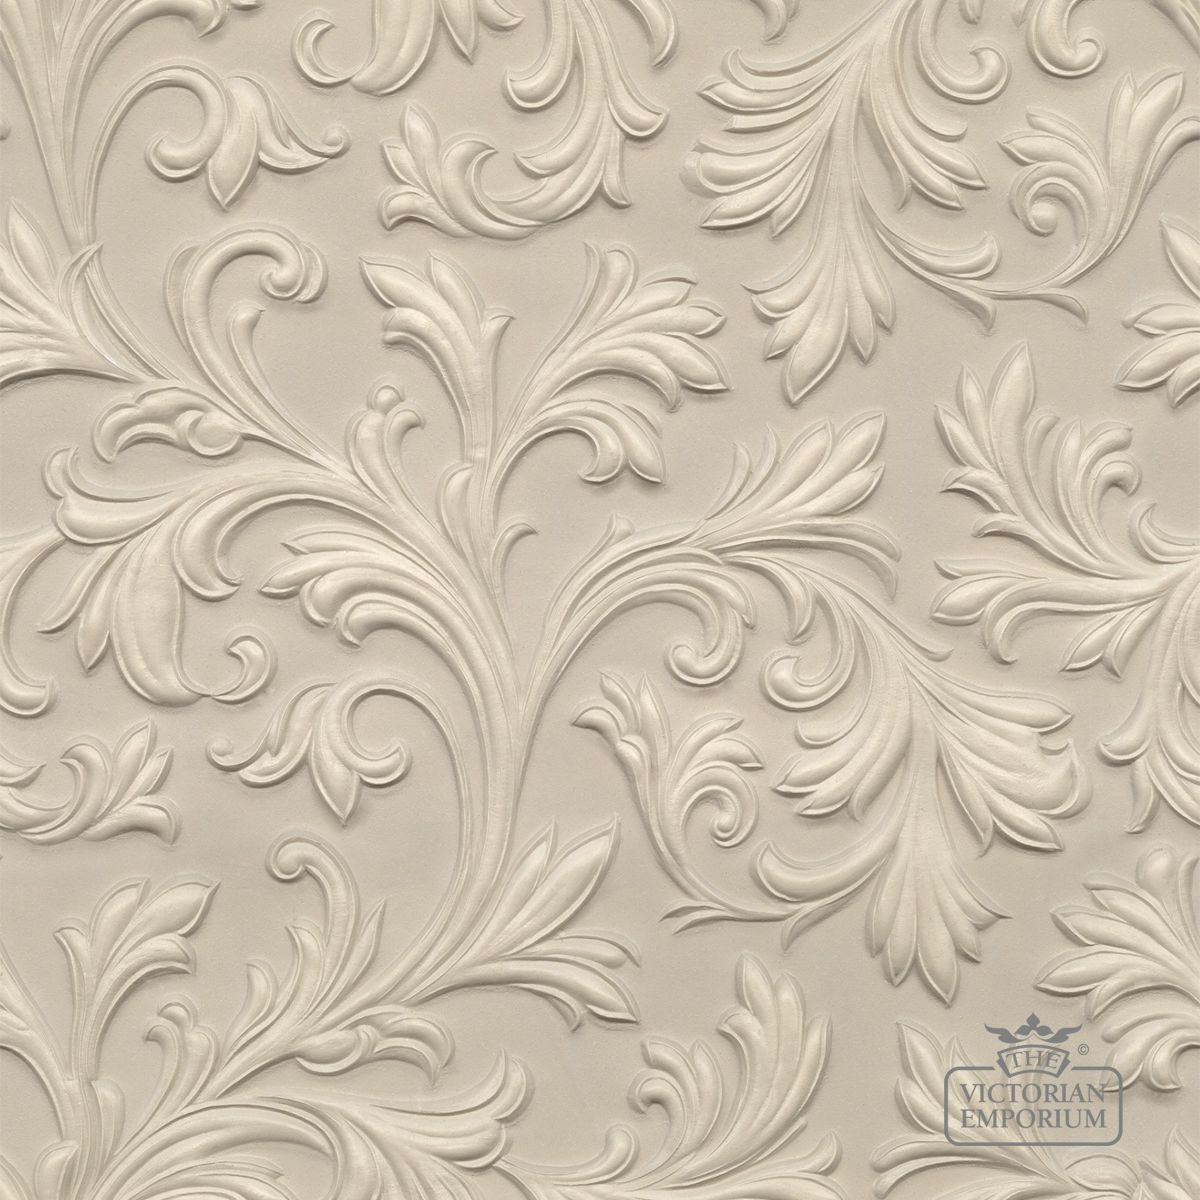 Victorian Era Wallpaper   Viewing Gallery Enable Javascript to access 1200x1200